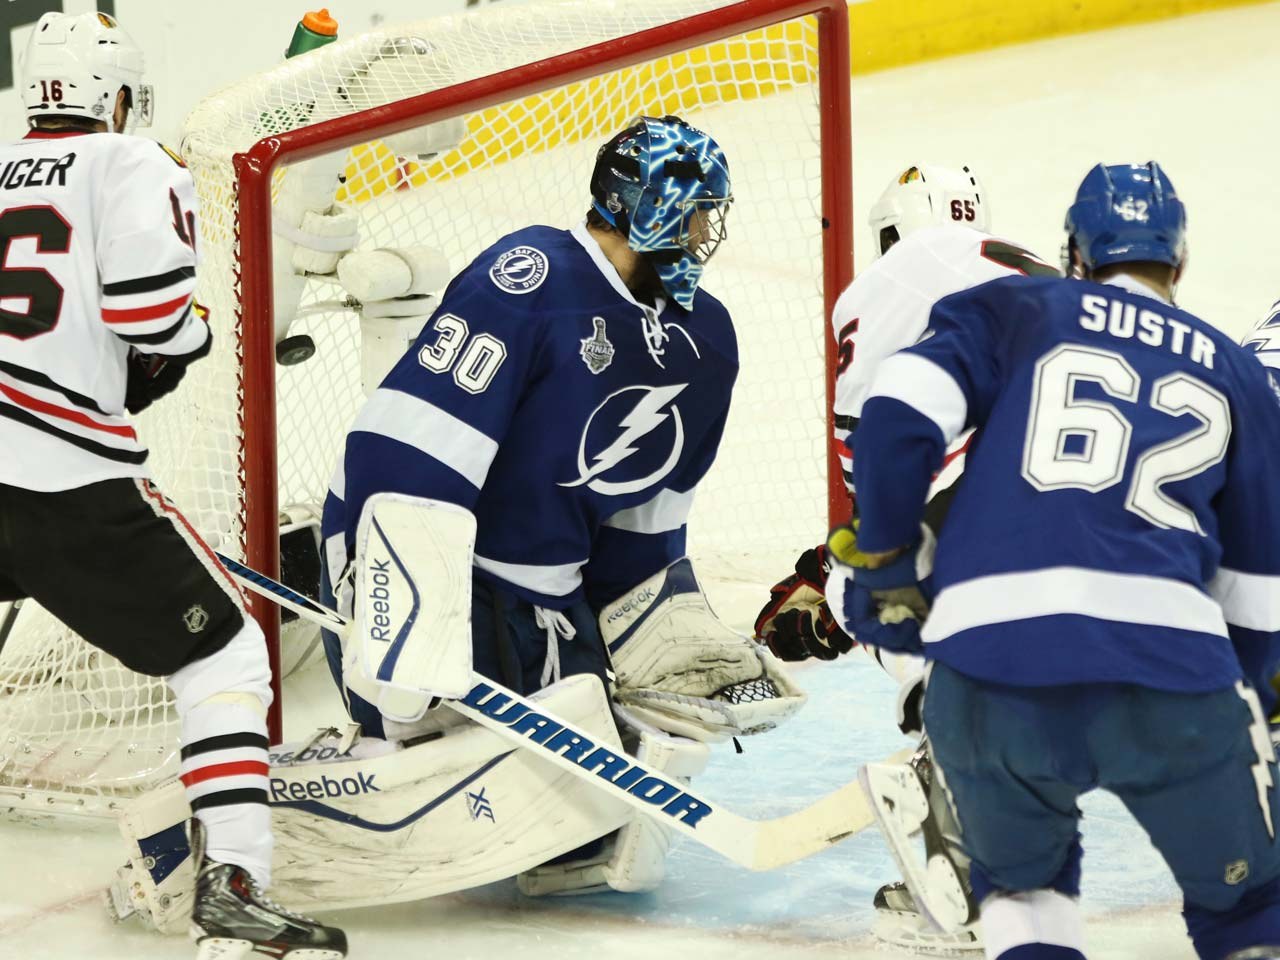 Ben Bishop of the Lightning looks the other way as the puck soars over his right shoulder.